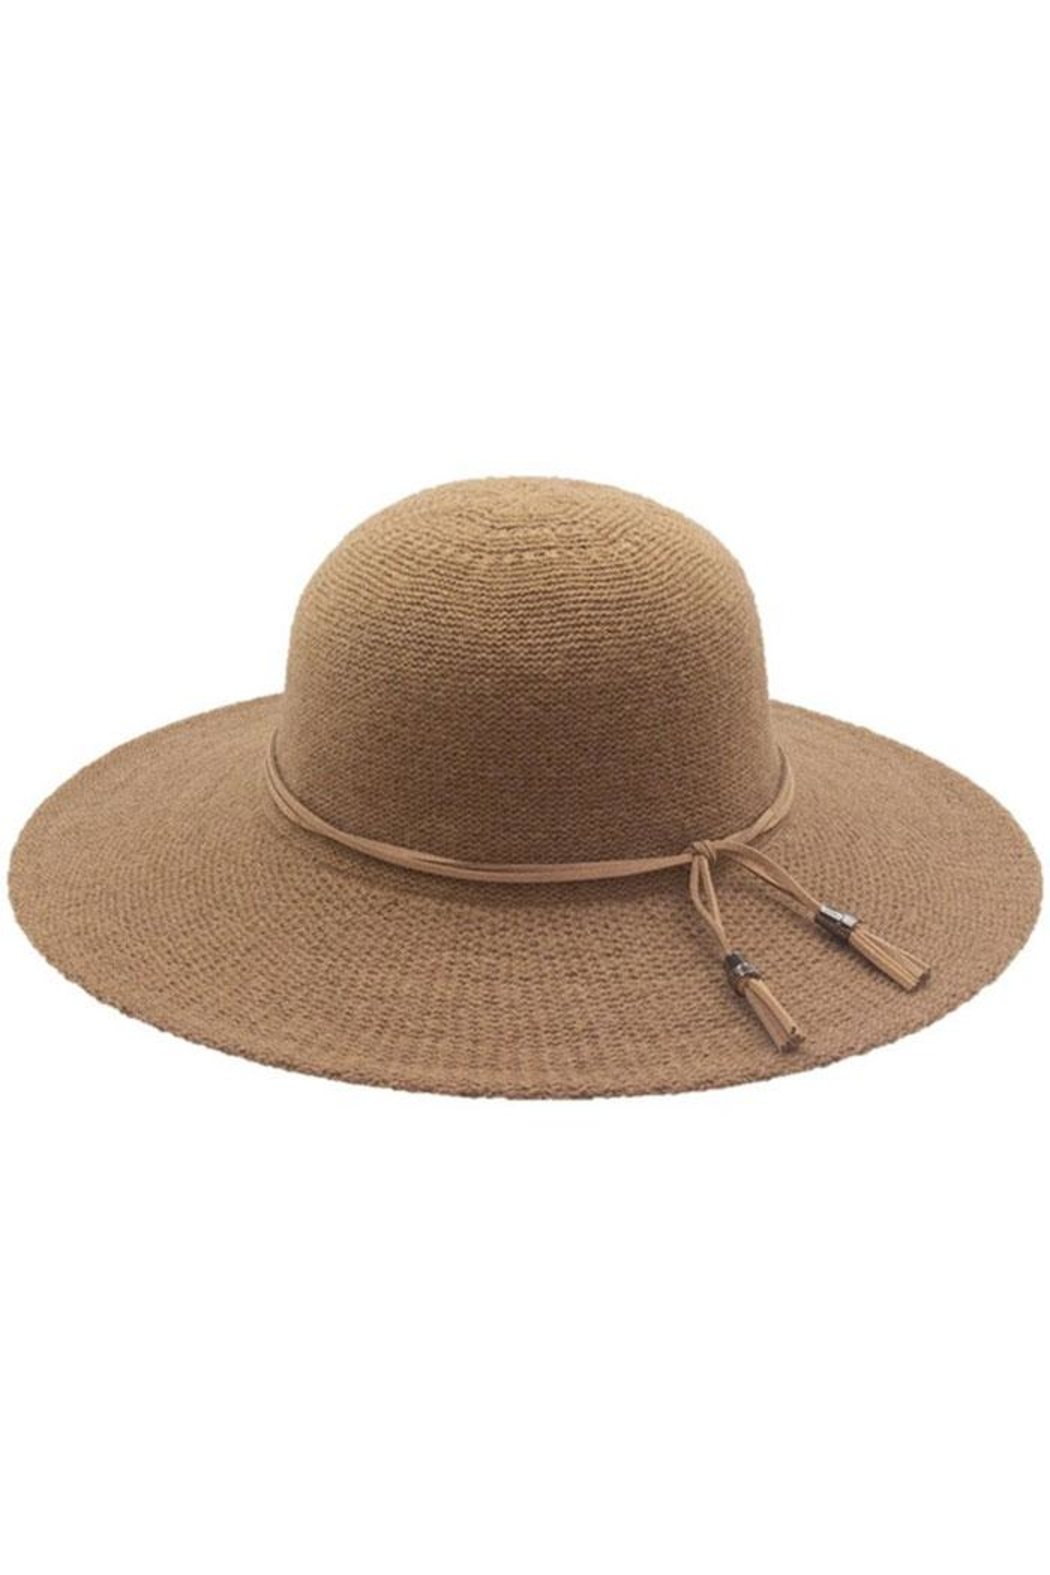 Too Too Hat Floppy Hat With Suede Tie - Main Image